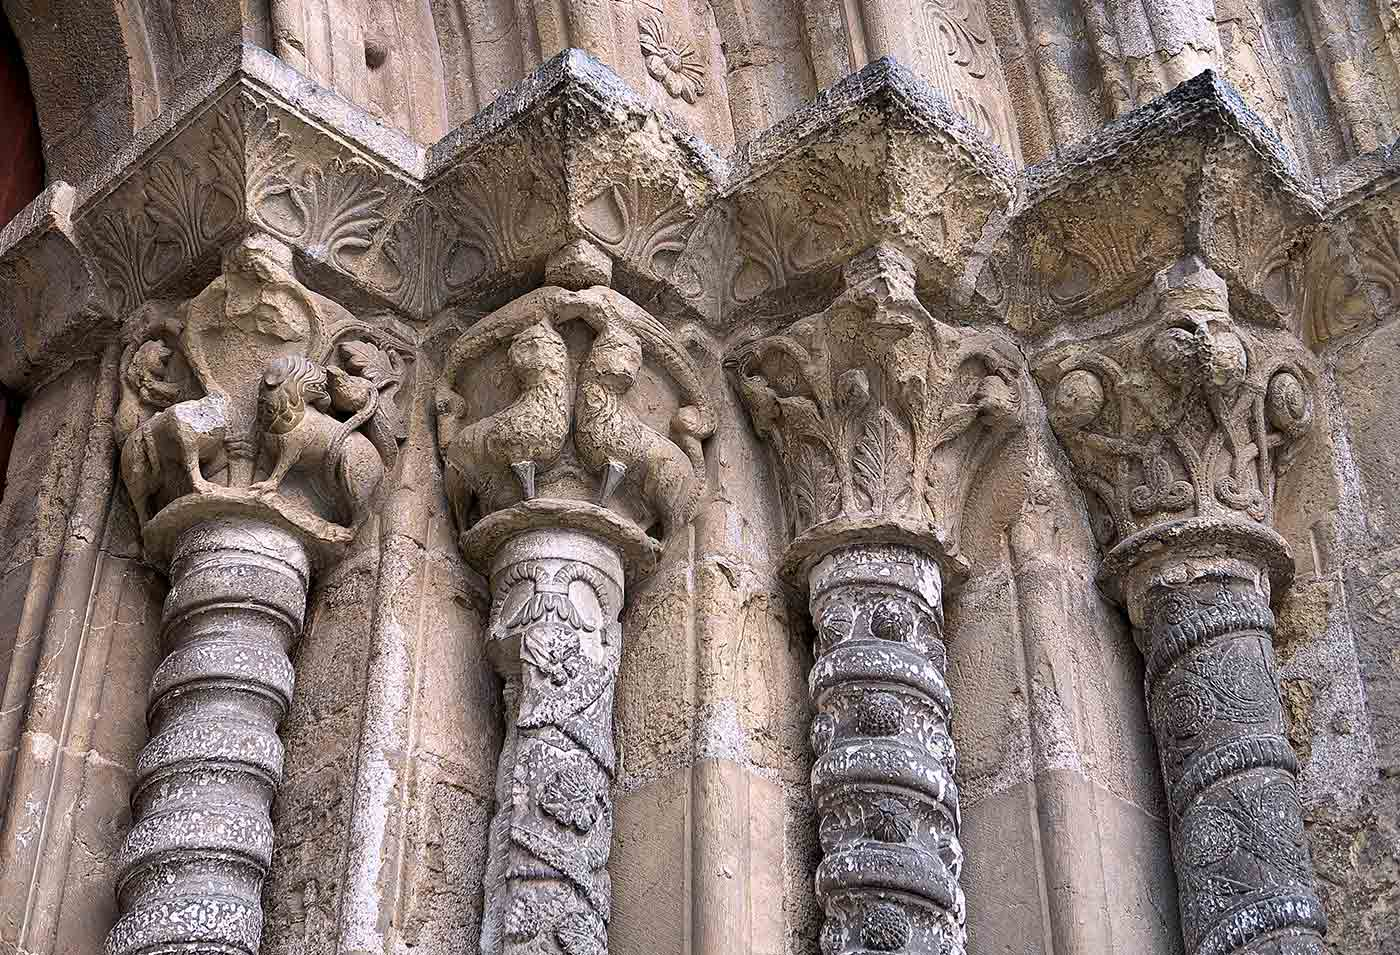 Vegetalist and animal intricate capital and column carvings in Santiago Church.